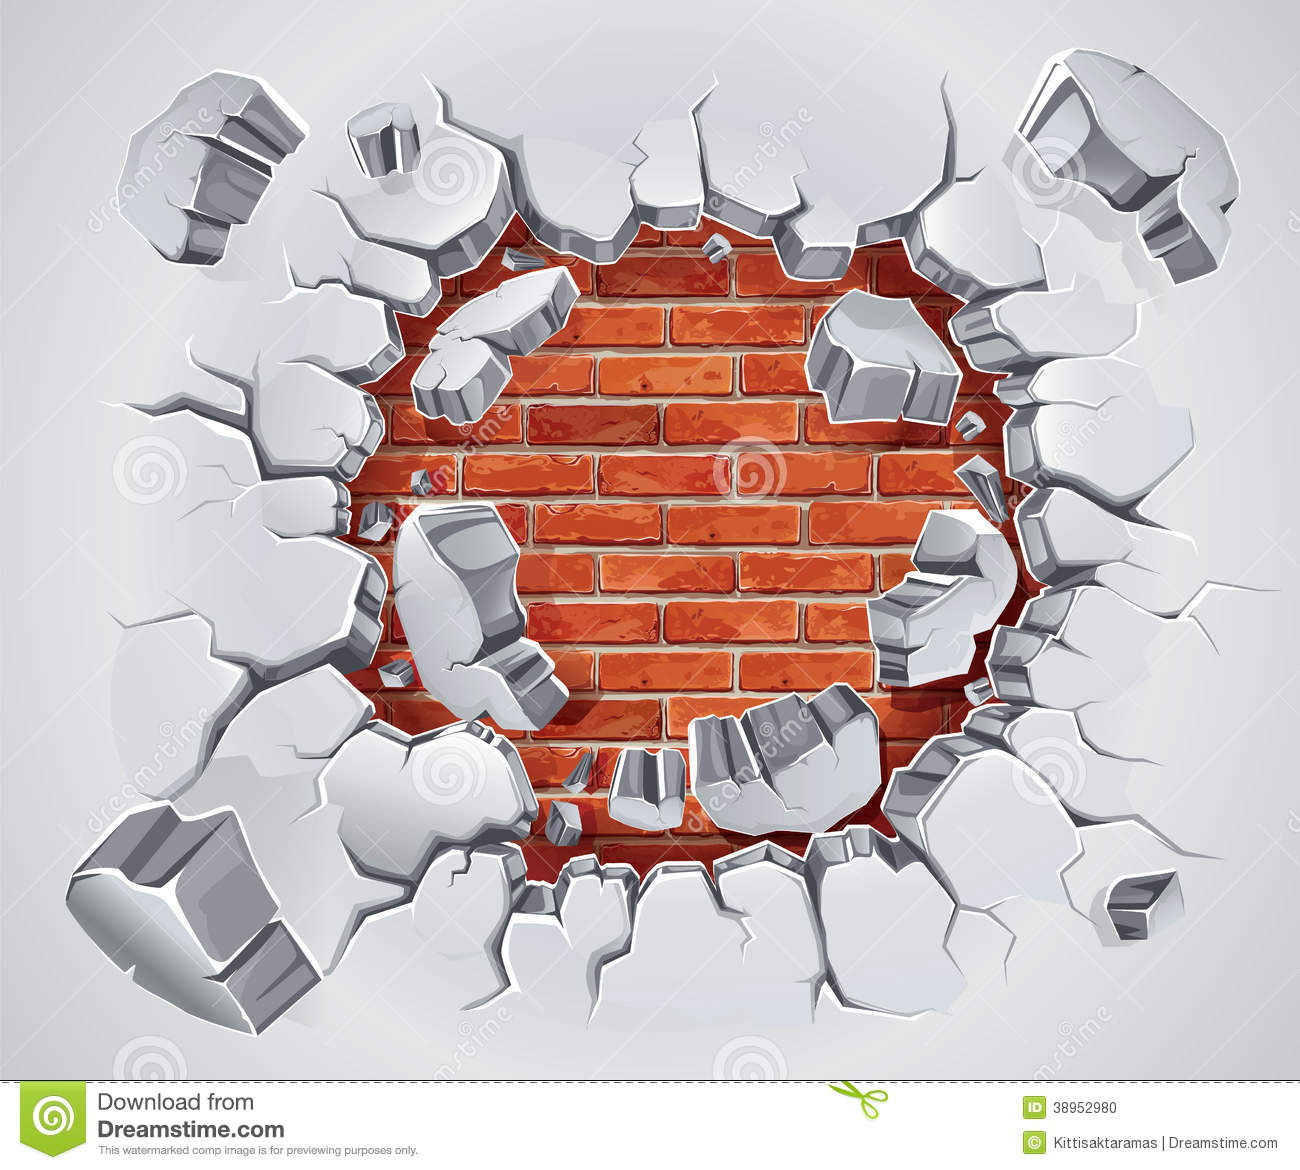 Does clipart damage walls.